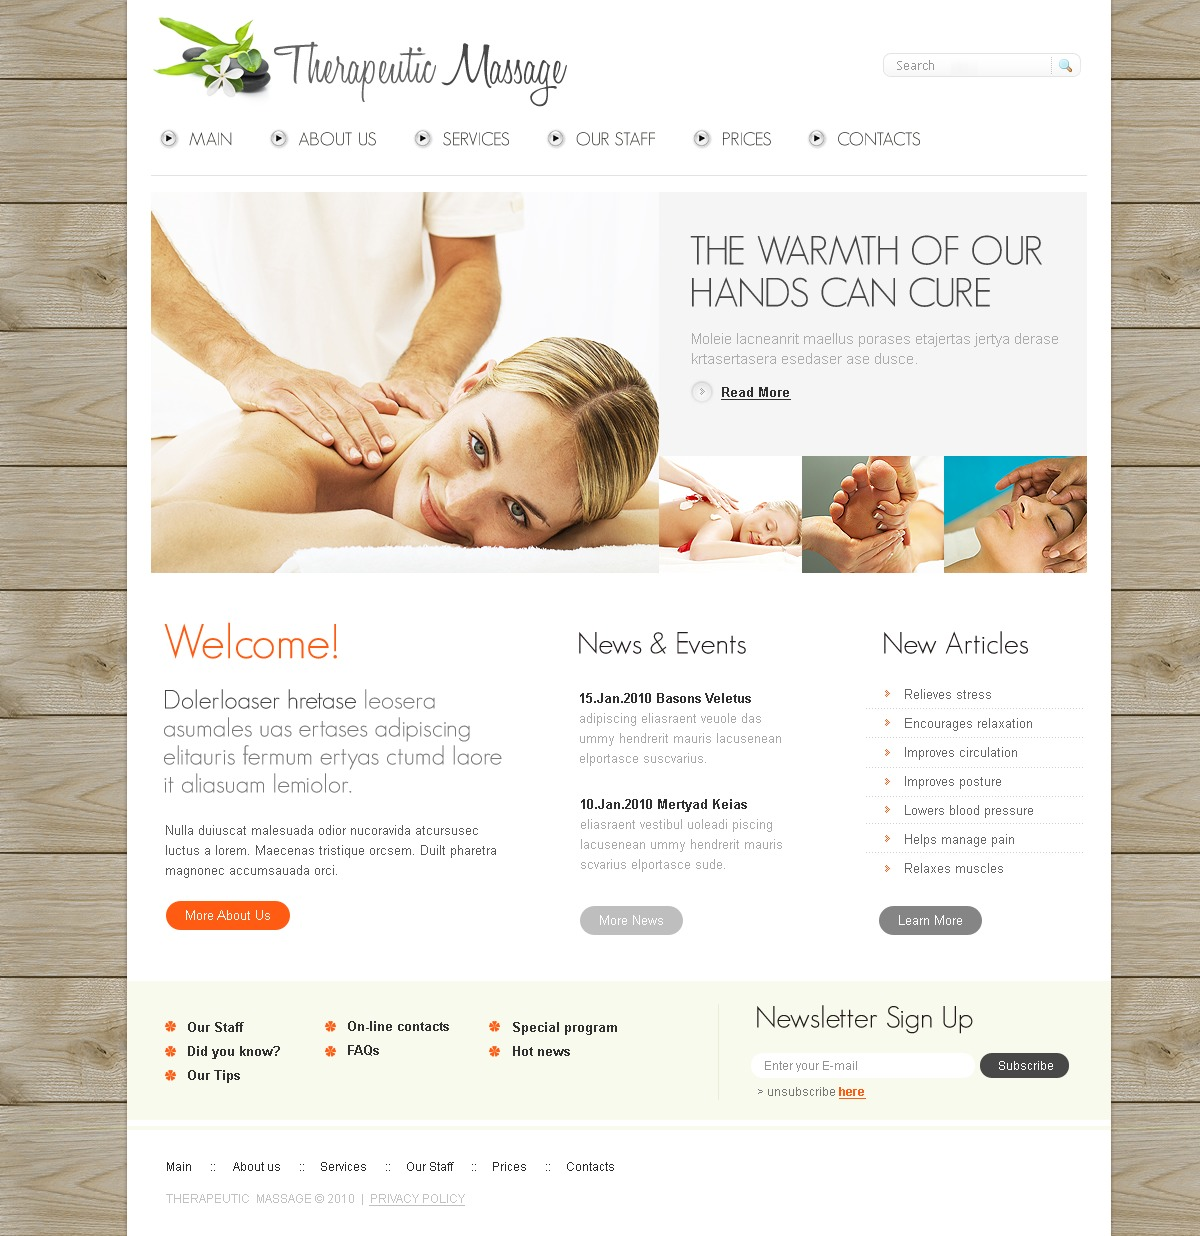 The Therapeutic Massage PSD Design 54169, one of the best PSD templates of its kind (beauty, medical, flash 8, wide), also known as therapeutic massage PSD template, shiatsu PSD template, therapy PSD template, masseur PSD template, body PSD template, back PSD template, neck PSD template, shoulder PSD template, pain PSD template, injury PSD template, relaxation PSD template, therapeutic PSD template, benefits PSD template, staff PSD template, price PSD template, class PSD template, find PSD template, side PSD template, effects PSD template, mind PSD template, spirit PSD template, nationally PSD template, certified PSD template, risks PSD template, services PSD template, help PSD template, professionalism PSD template, payment PSD template, way PSD template, case PSD template, difficult PSD template, fast PSD template, additi and related with therapeutic massage, shiatsu, therapy, masseur, body, back, neck, shoulder, pain, injury, relaxation, therapeutic, benefits, staff, price, class, find, side, effects, mind, spirit, nationally, certified, risks, services, help, professionalism, payment, way, case, difficult, fast, additi, etc.